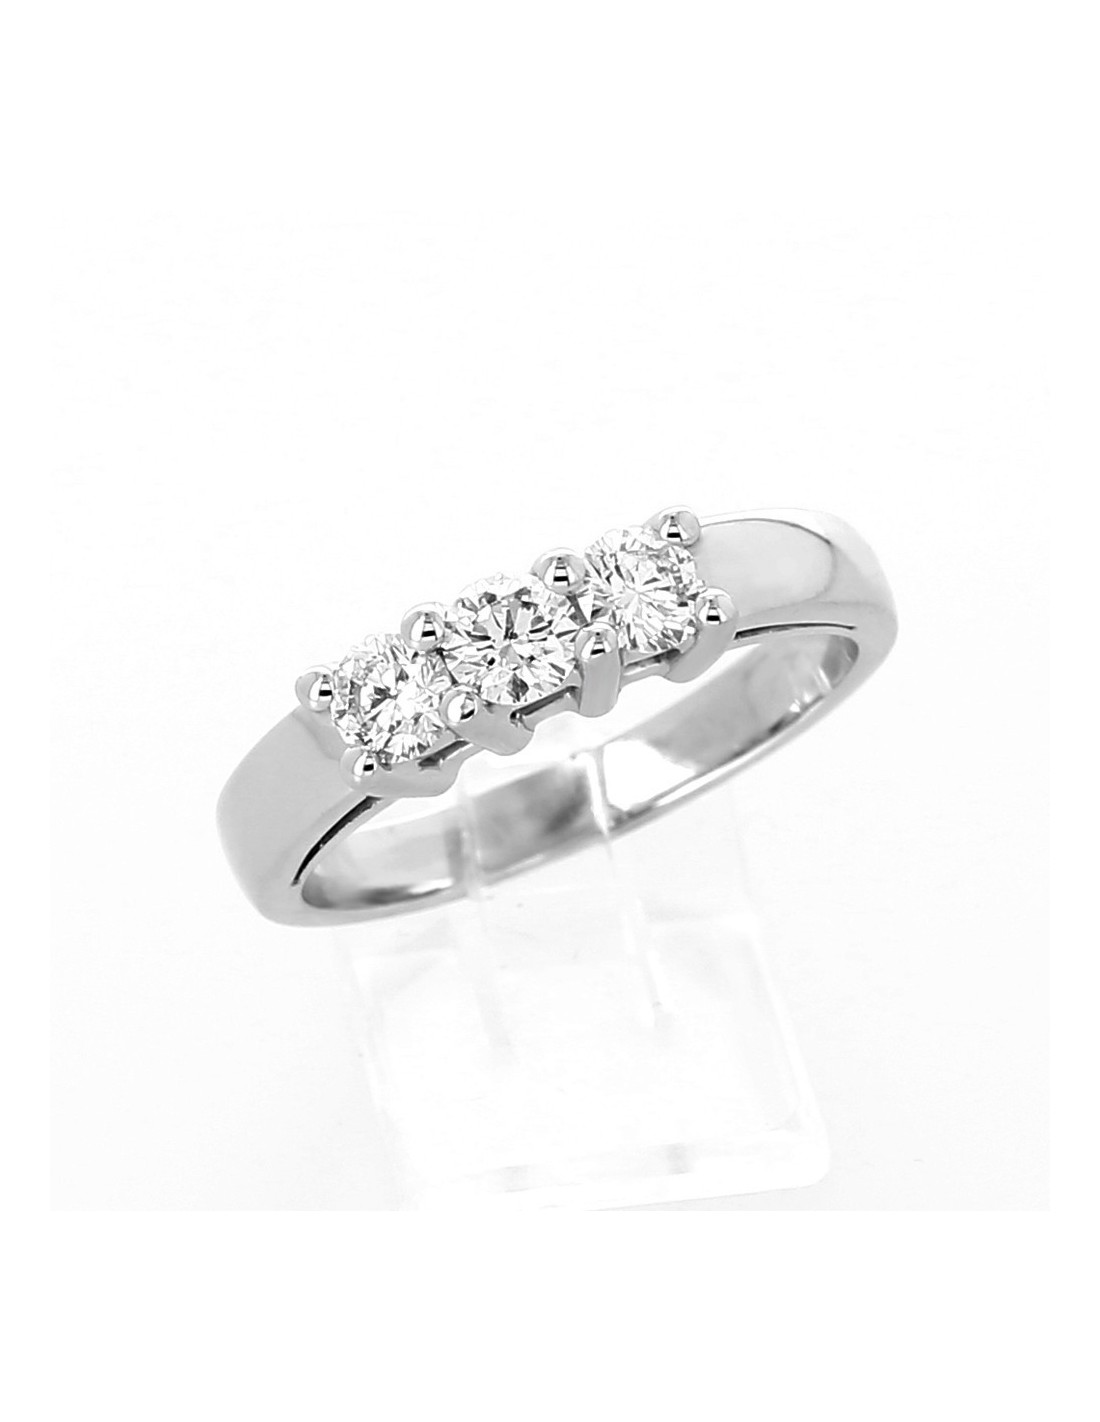 Bague diamant 3 ct